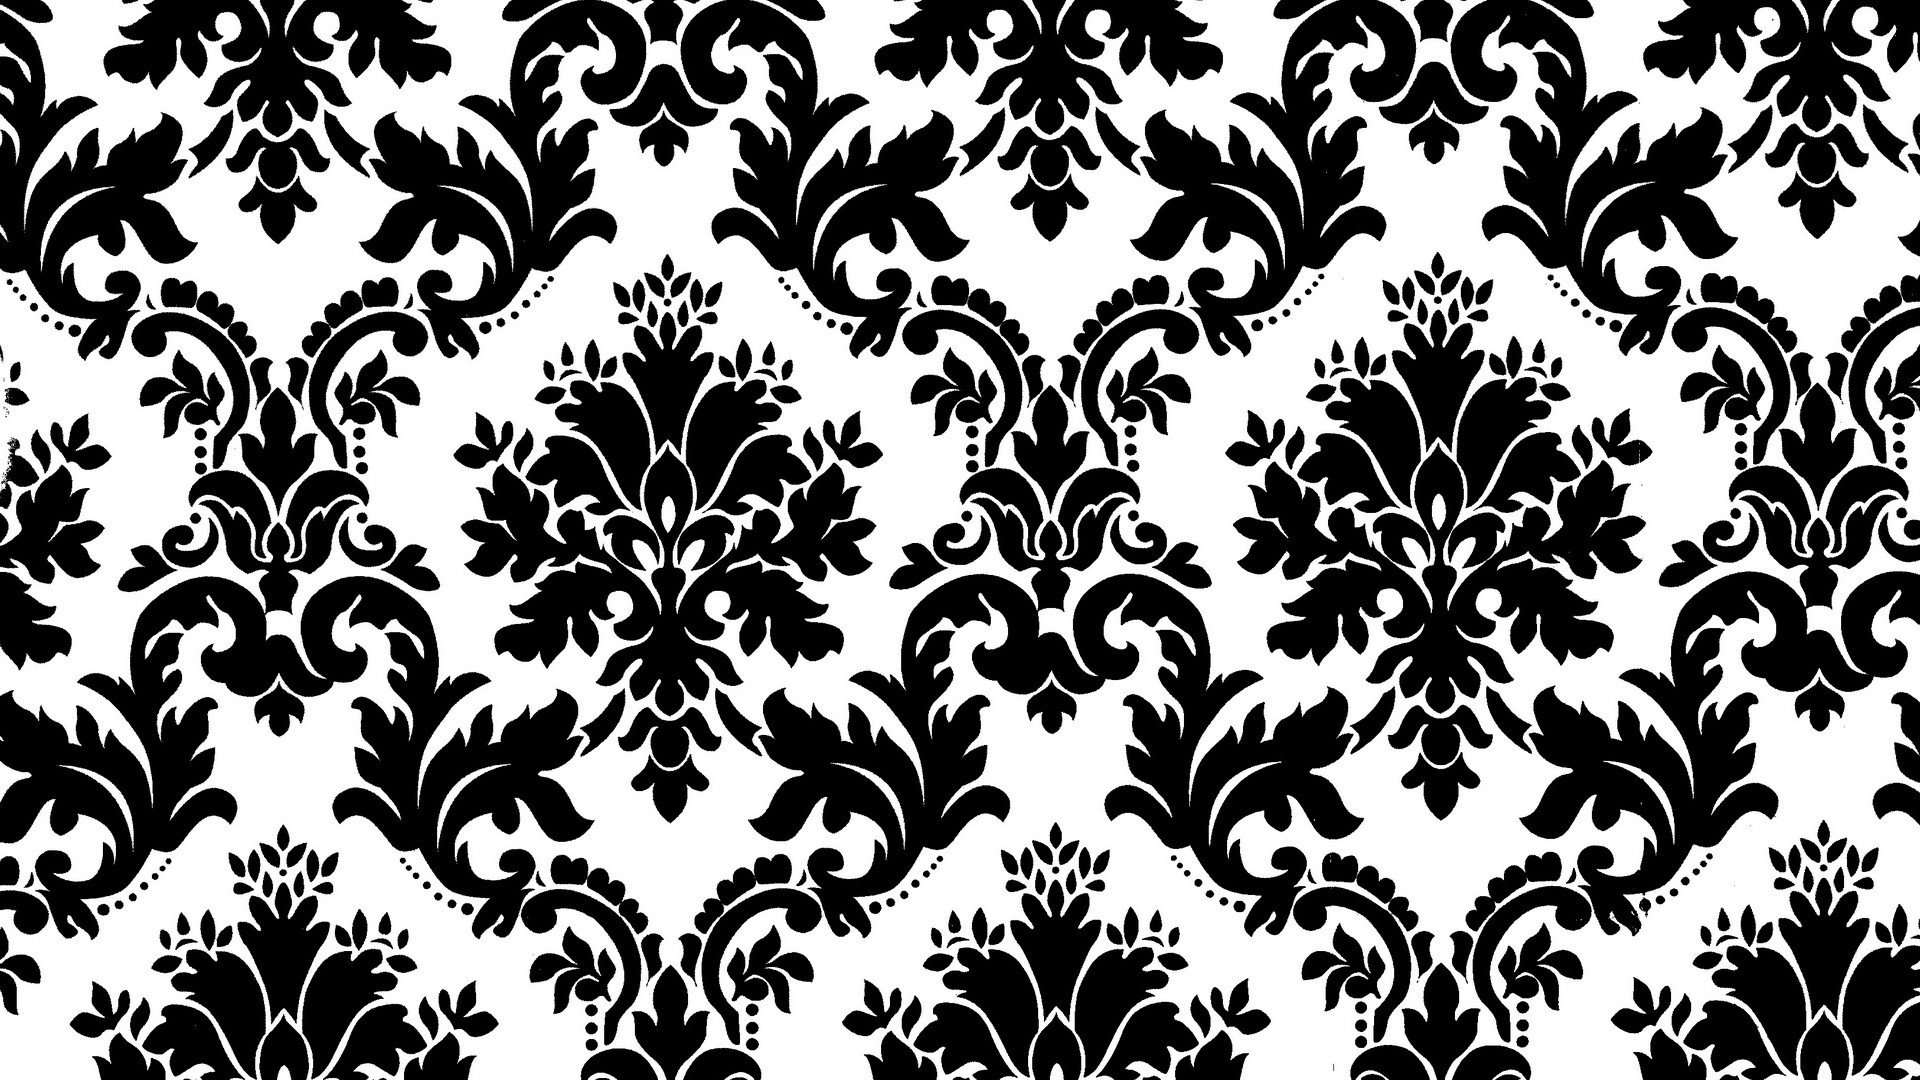 Patterns Black and White Black and White Pattern Backgrounds